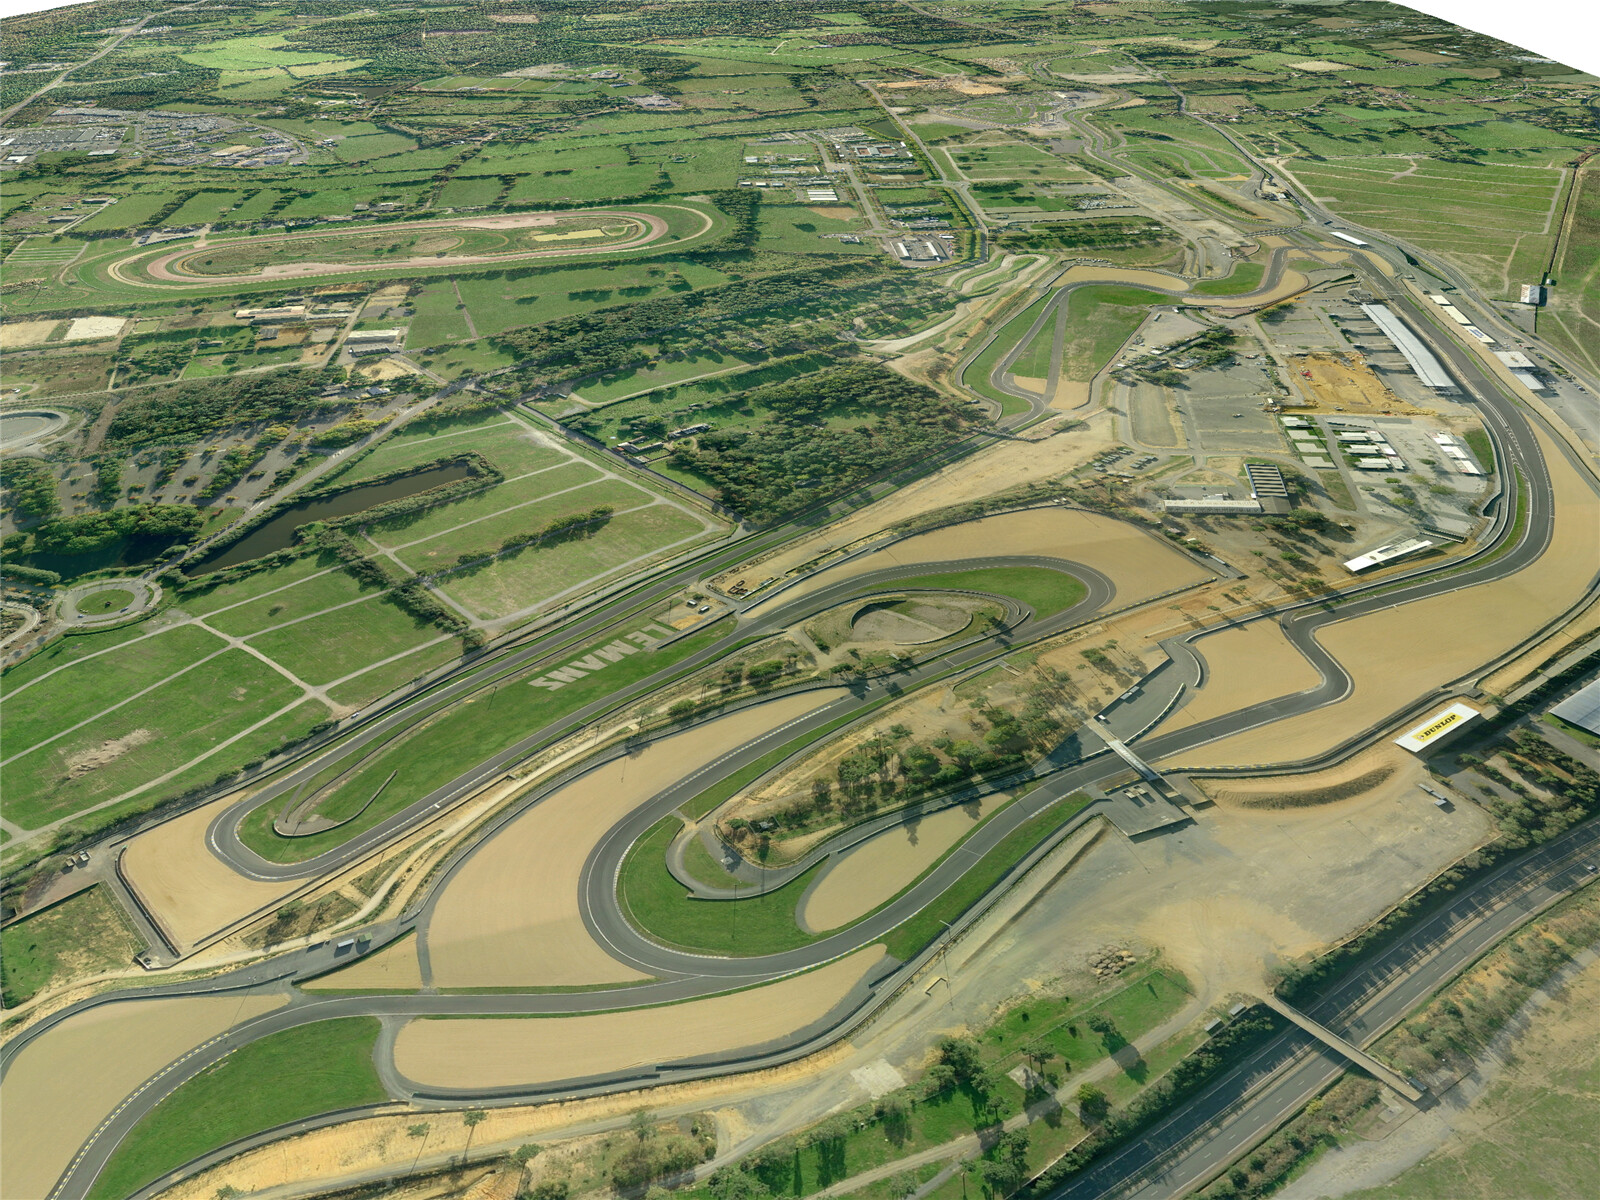 Le Mans Racing Circuit